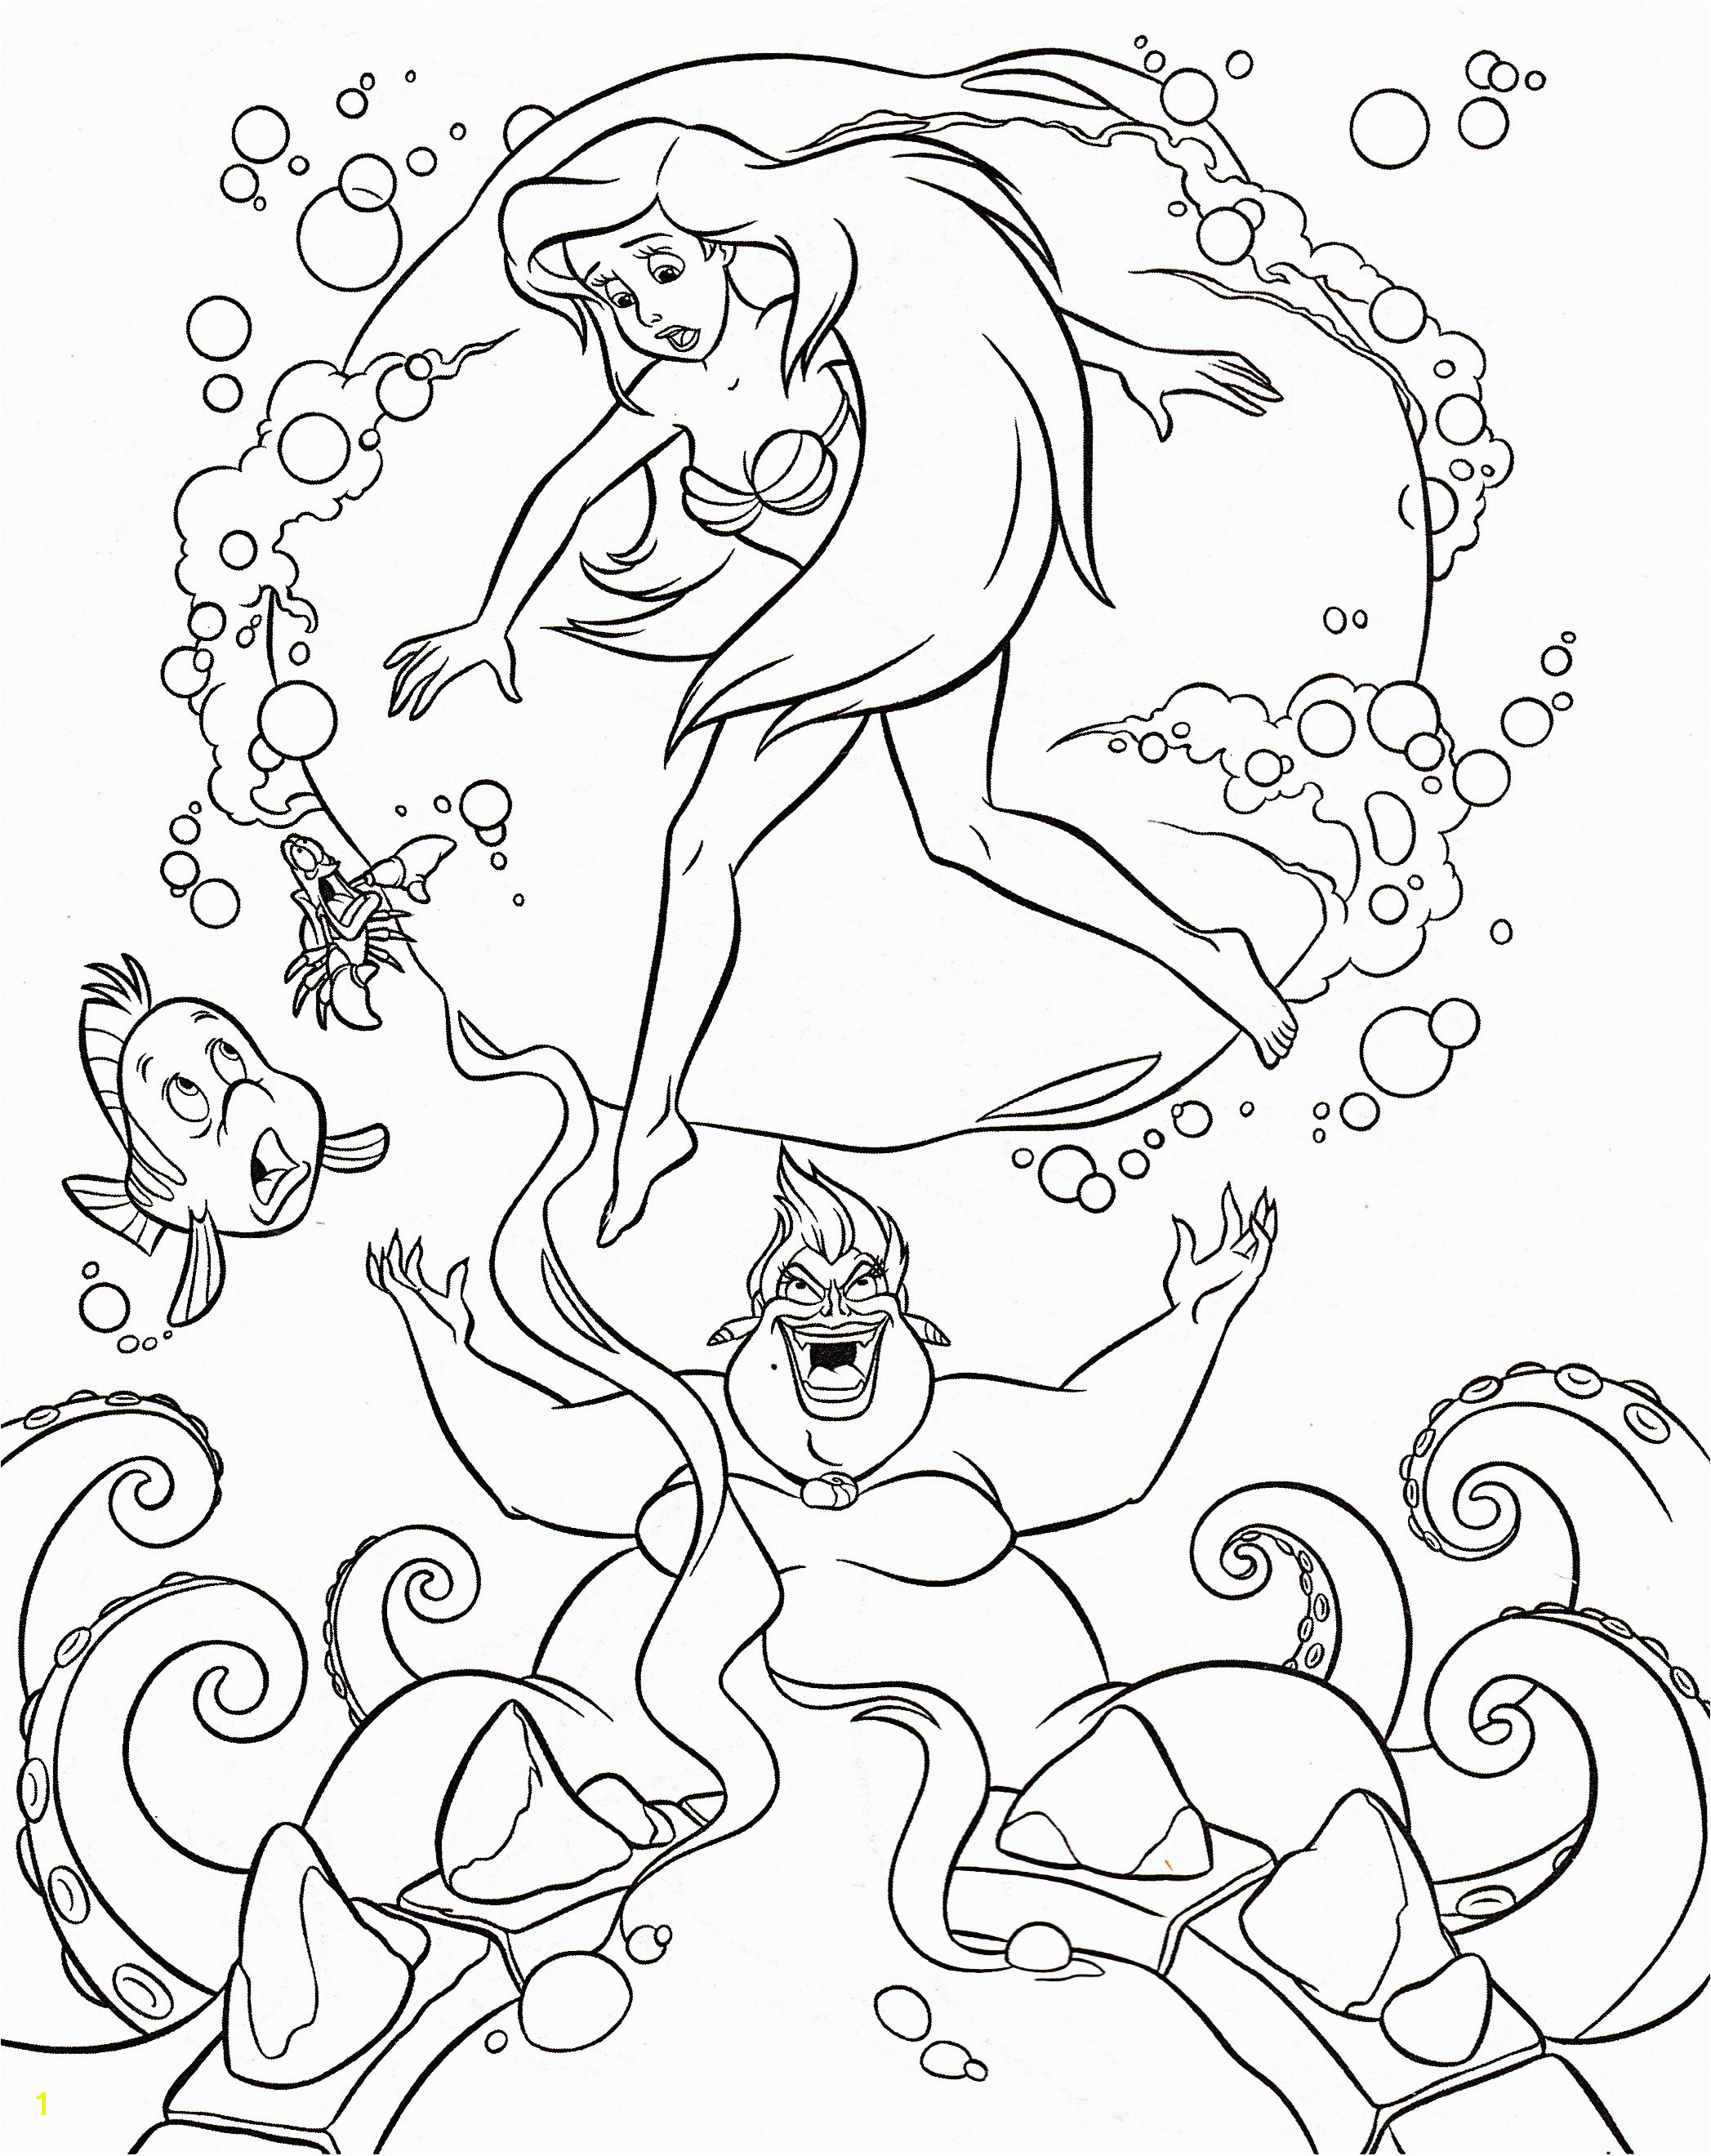 Coloring Pages Disney Princess Free Appealing Lovely Fresh Chuggington Coloring Pages Free Printabl Pin Od Tracy